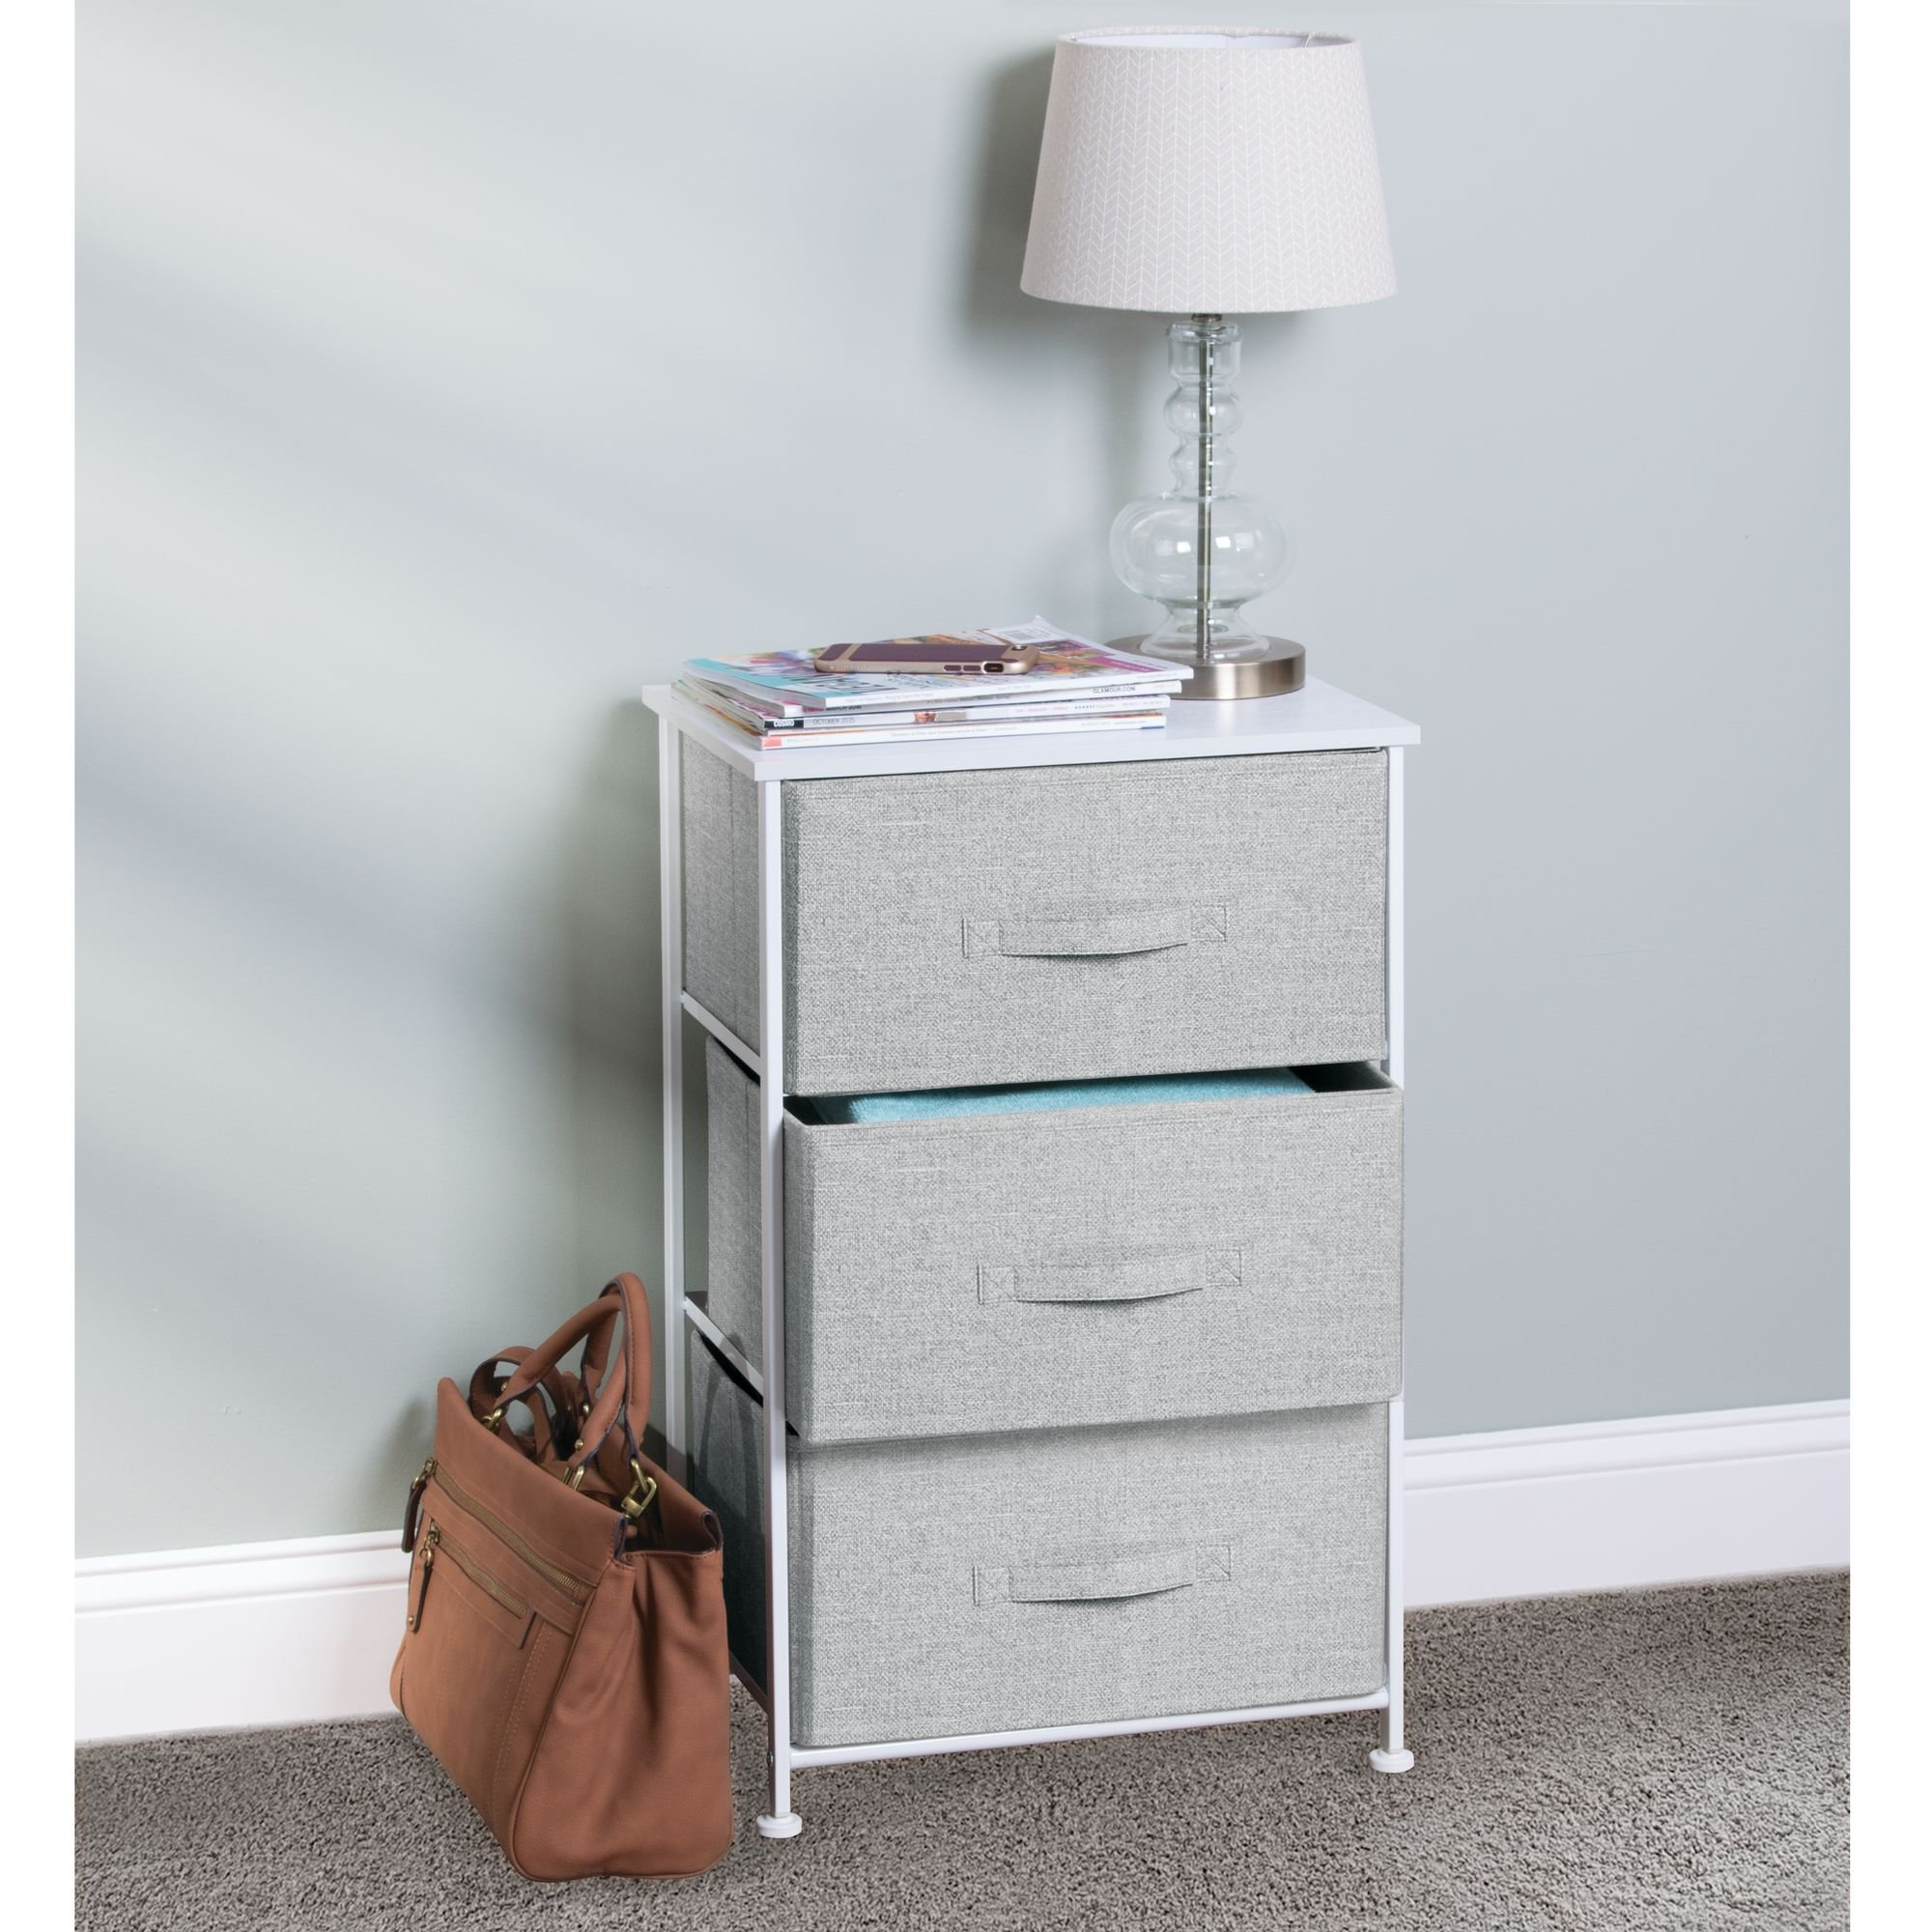 drawer jewellery of drawers products acrylic specifications storage for organiser and cosmetic organizer